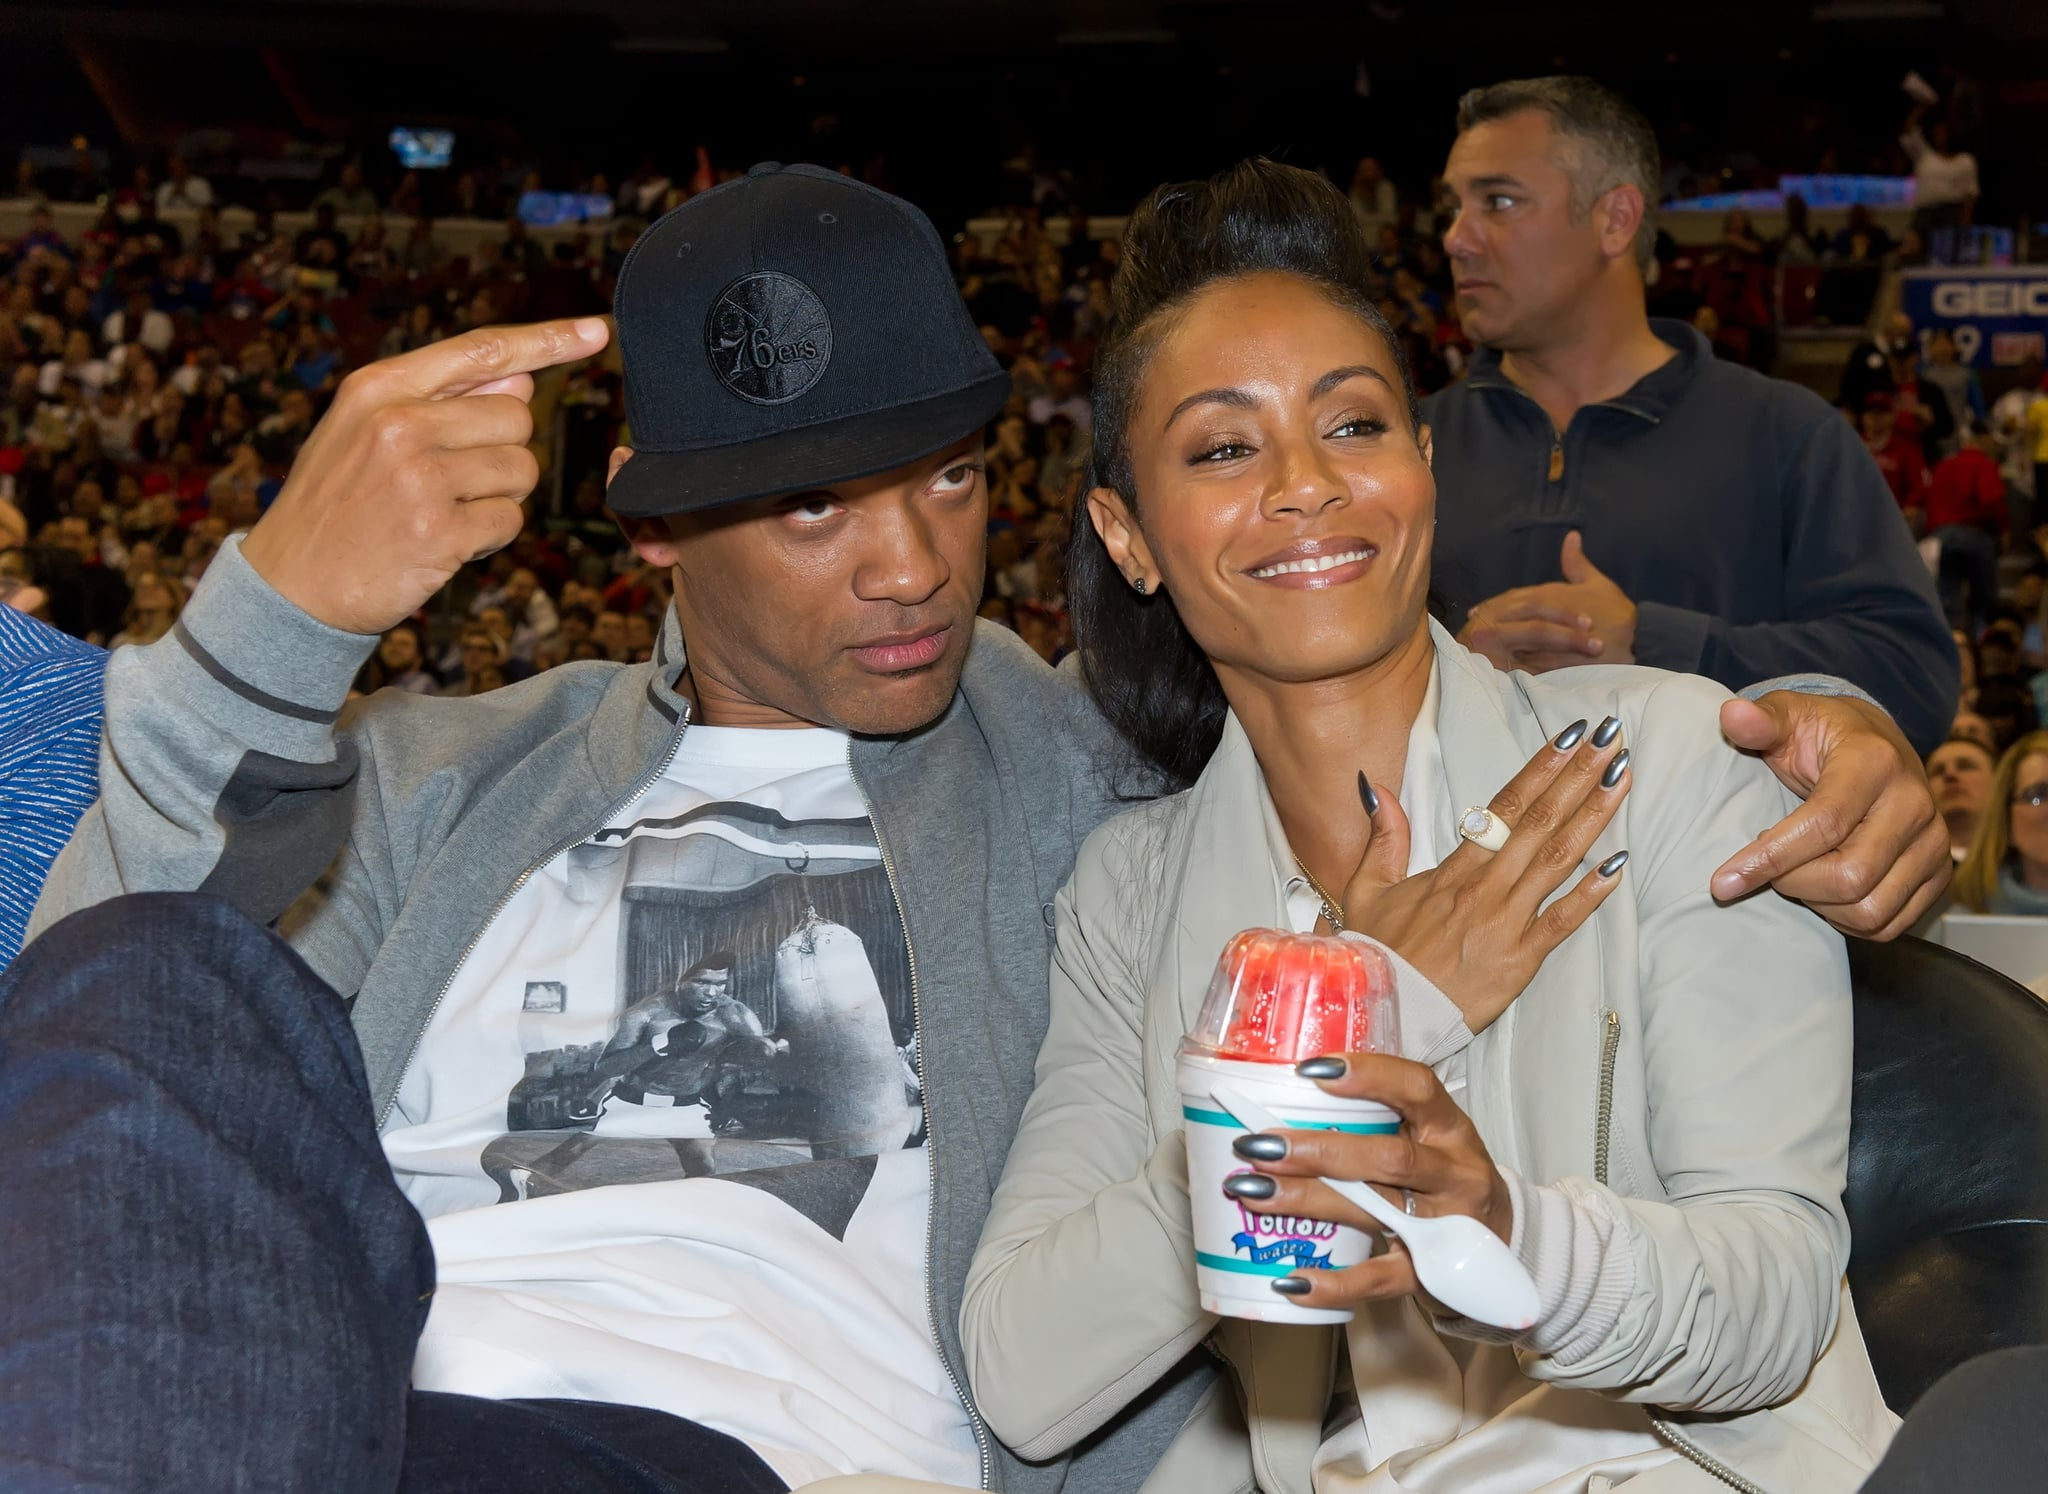 Will Smith repped his hometown team, the Philadelphia 76ers, while watching them play the Miami Heat with his wife, Jada Pinkett Smith, in March 2012.